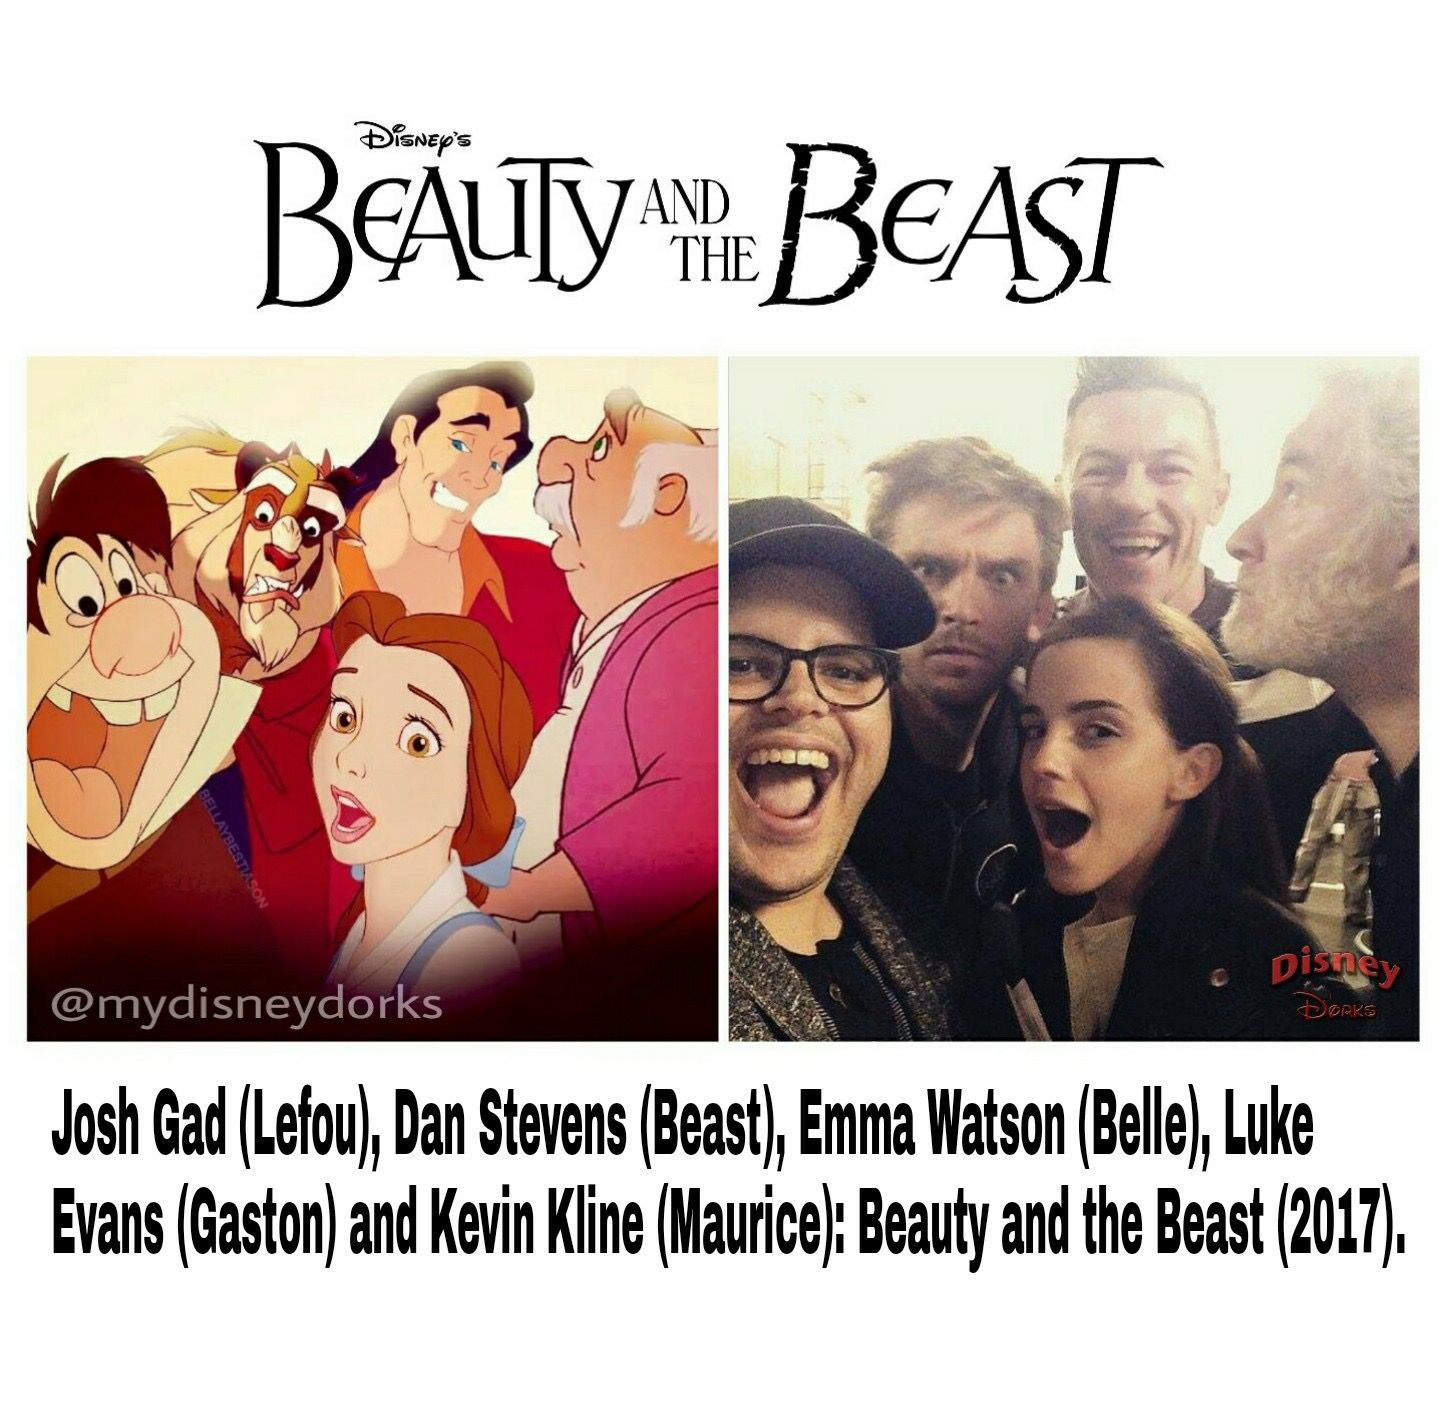 flirting quotes about beauty and the beast cast pictures 2017